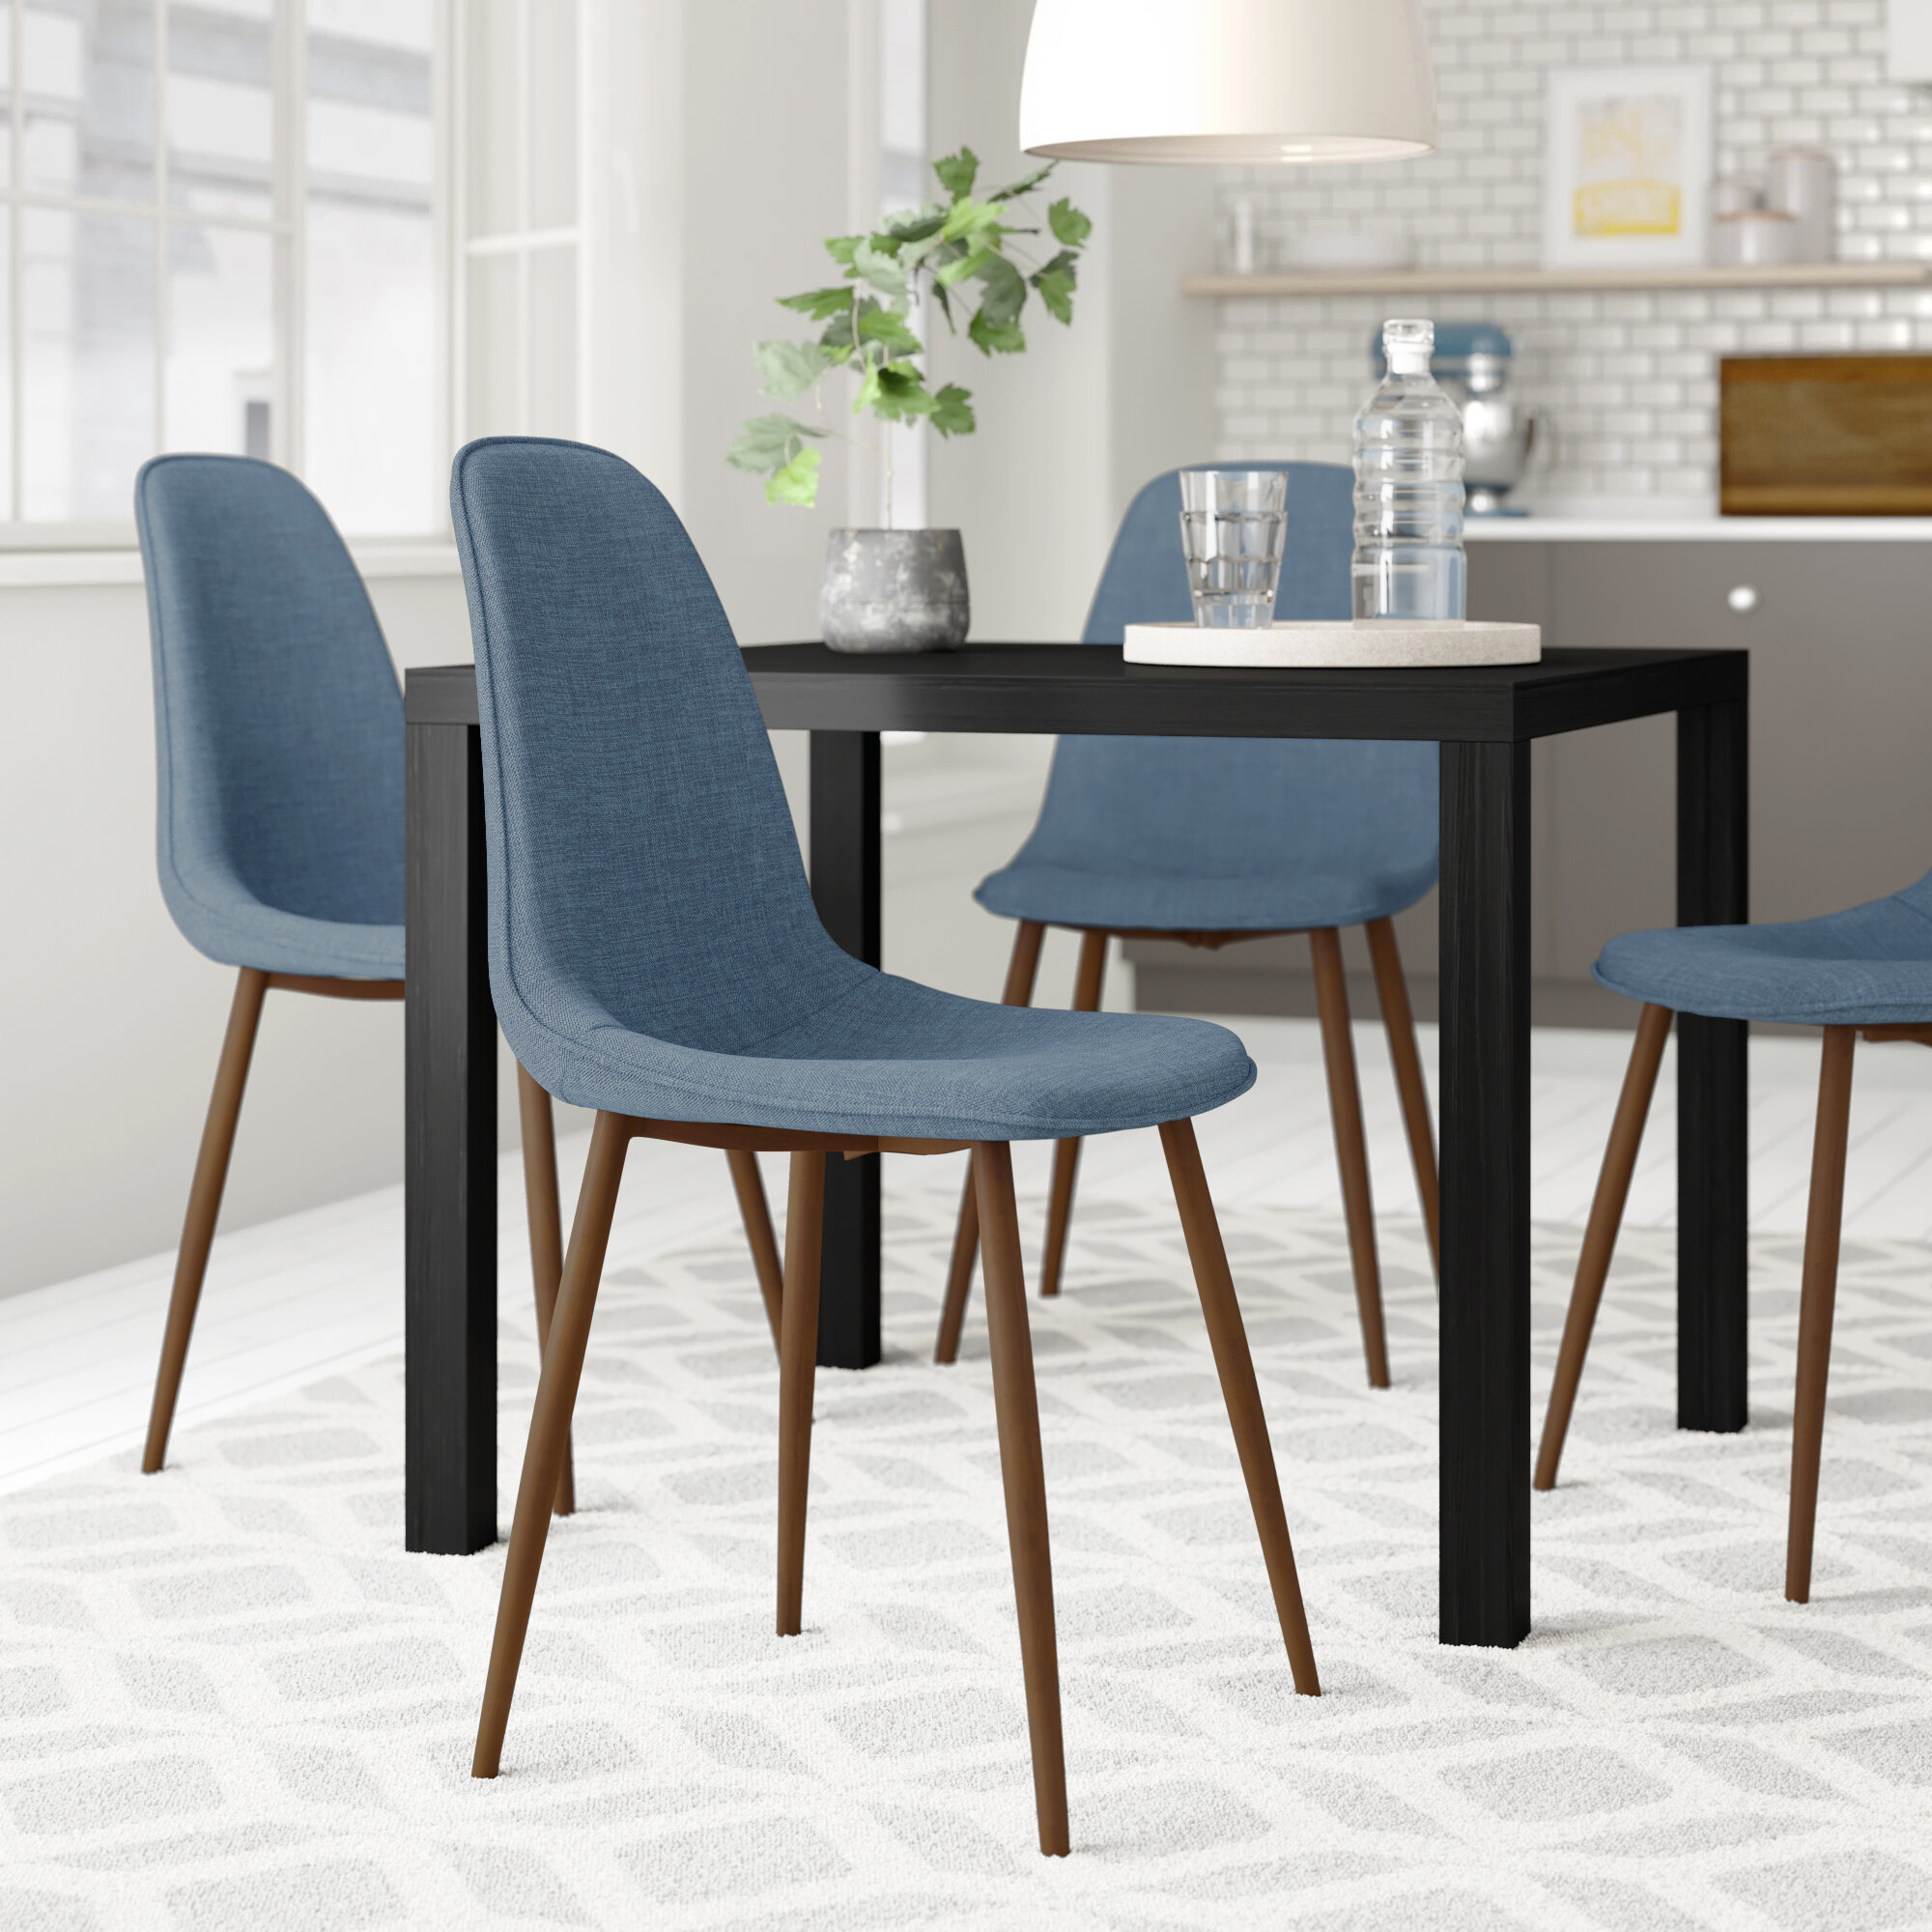 upholstered side dining chairs